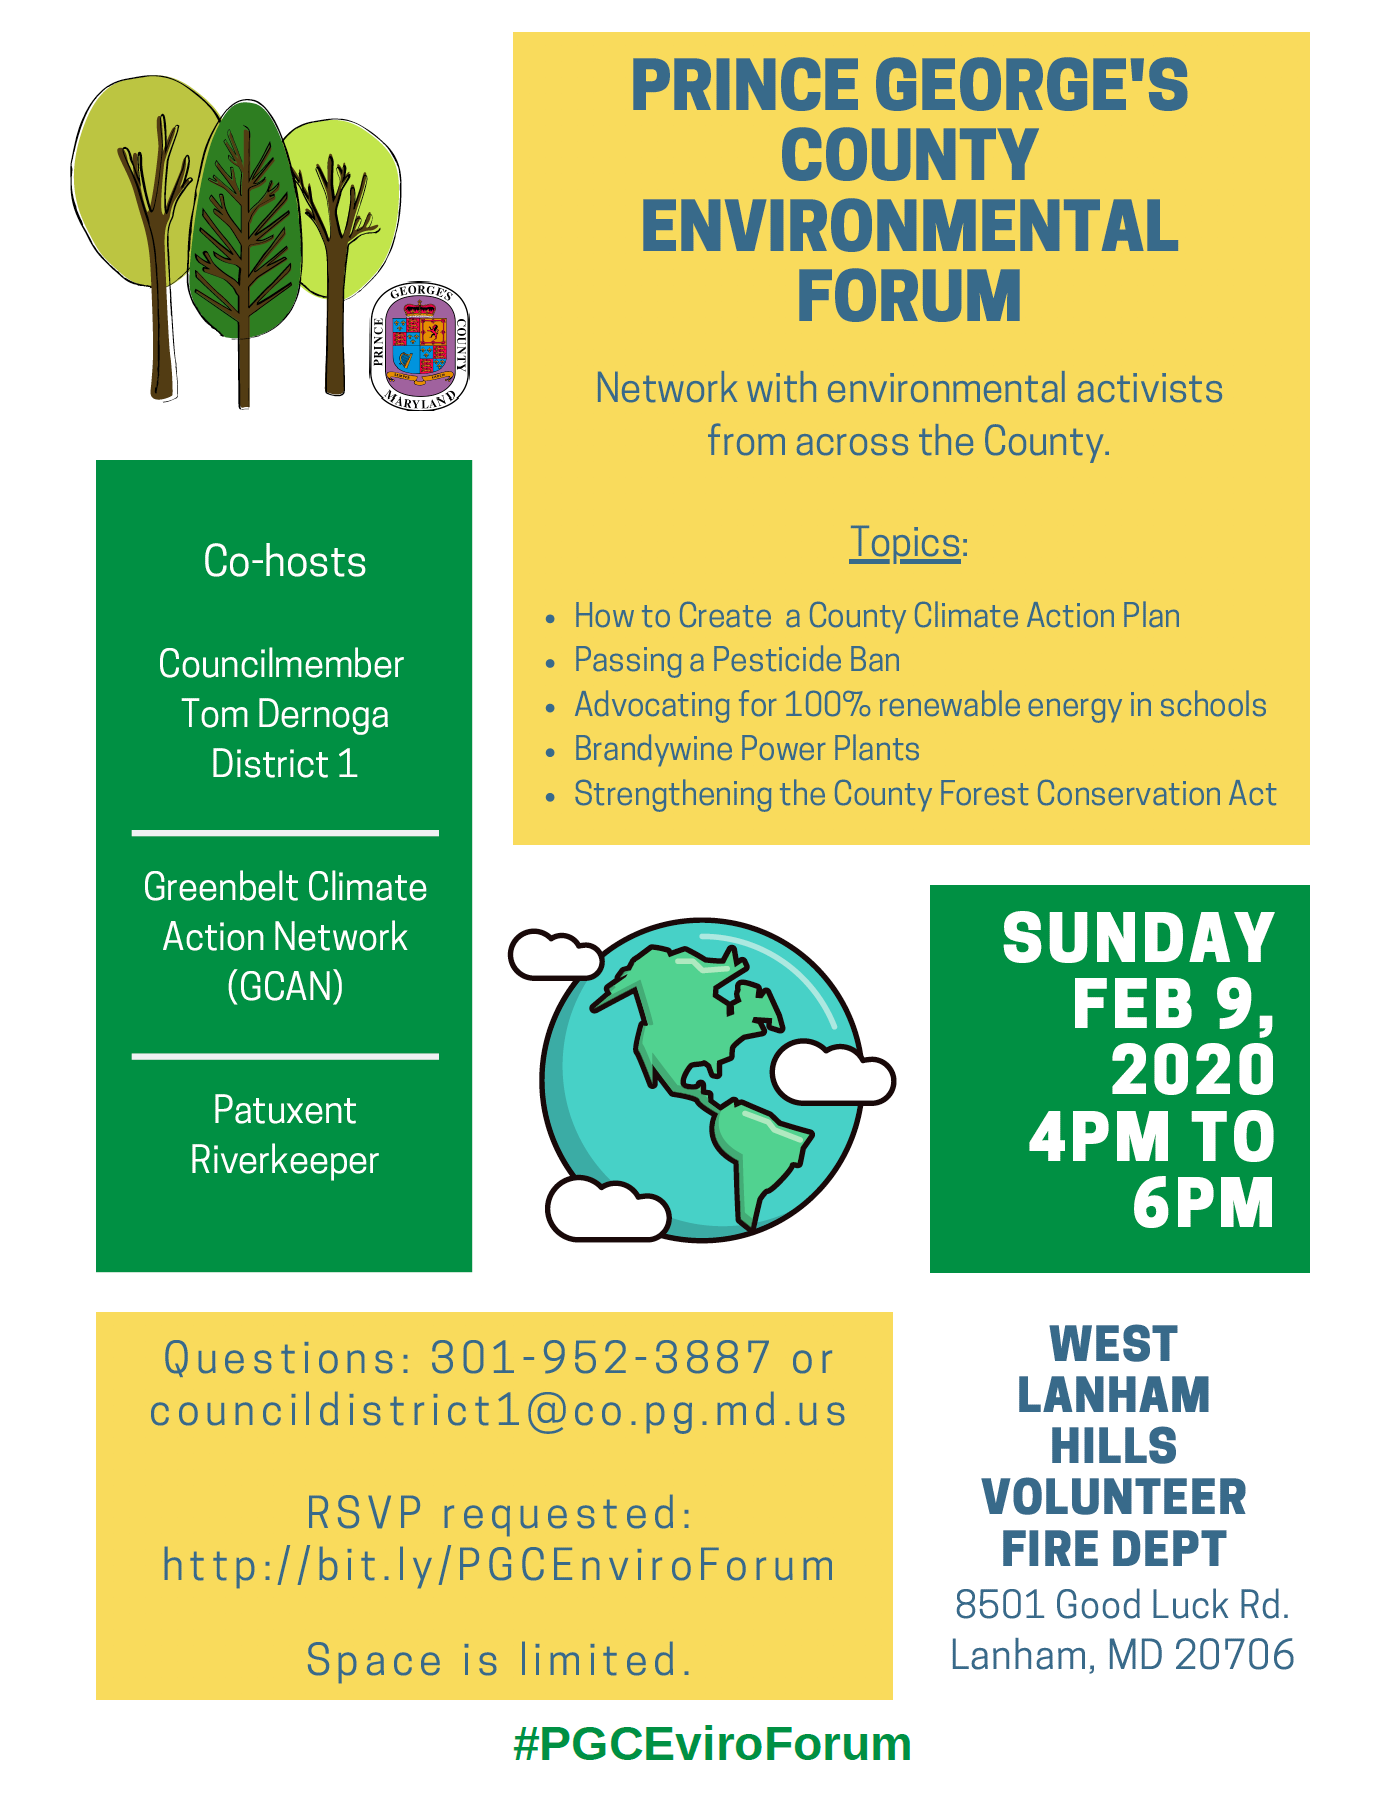 Sun Feb 9 – Join us for a Prince George's County Environmental Forum